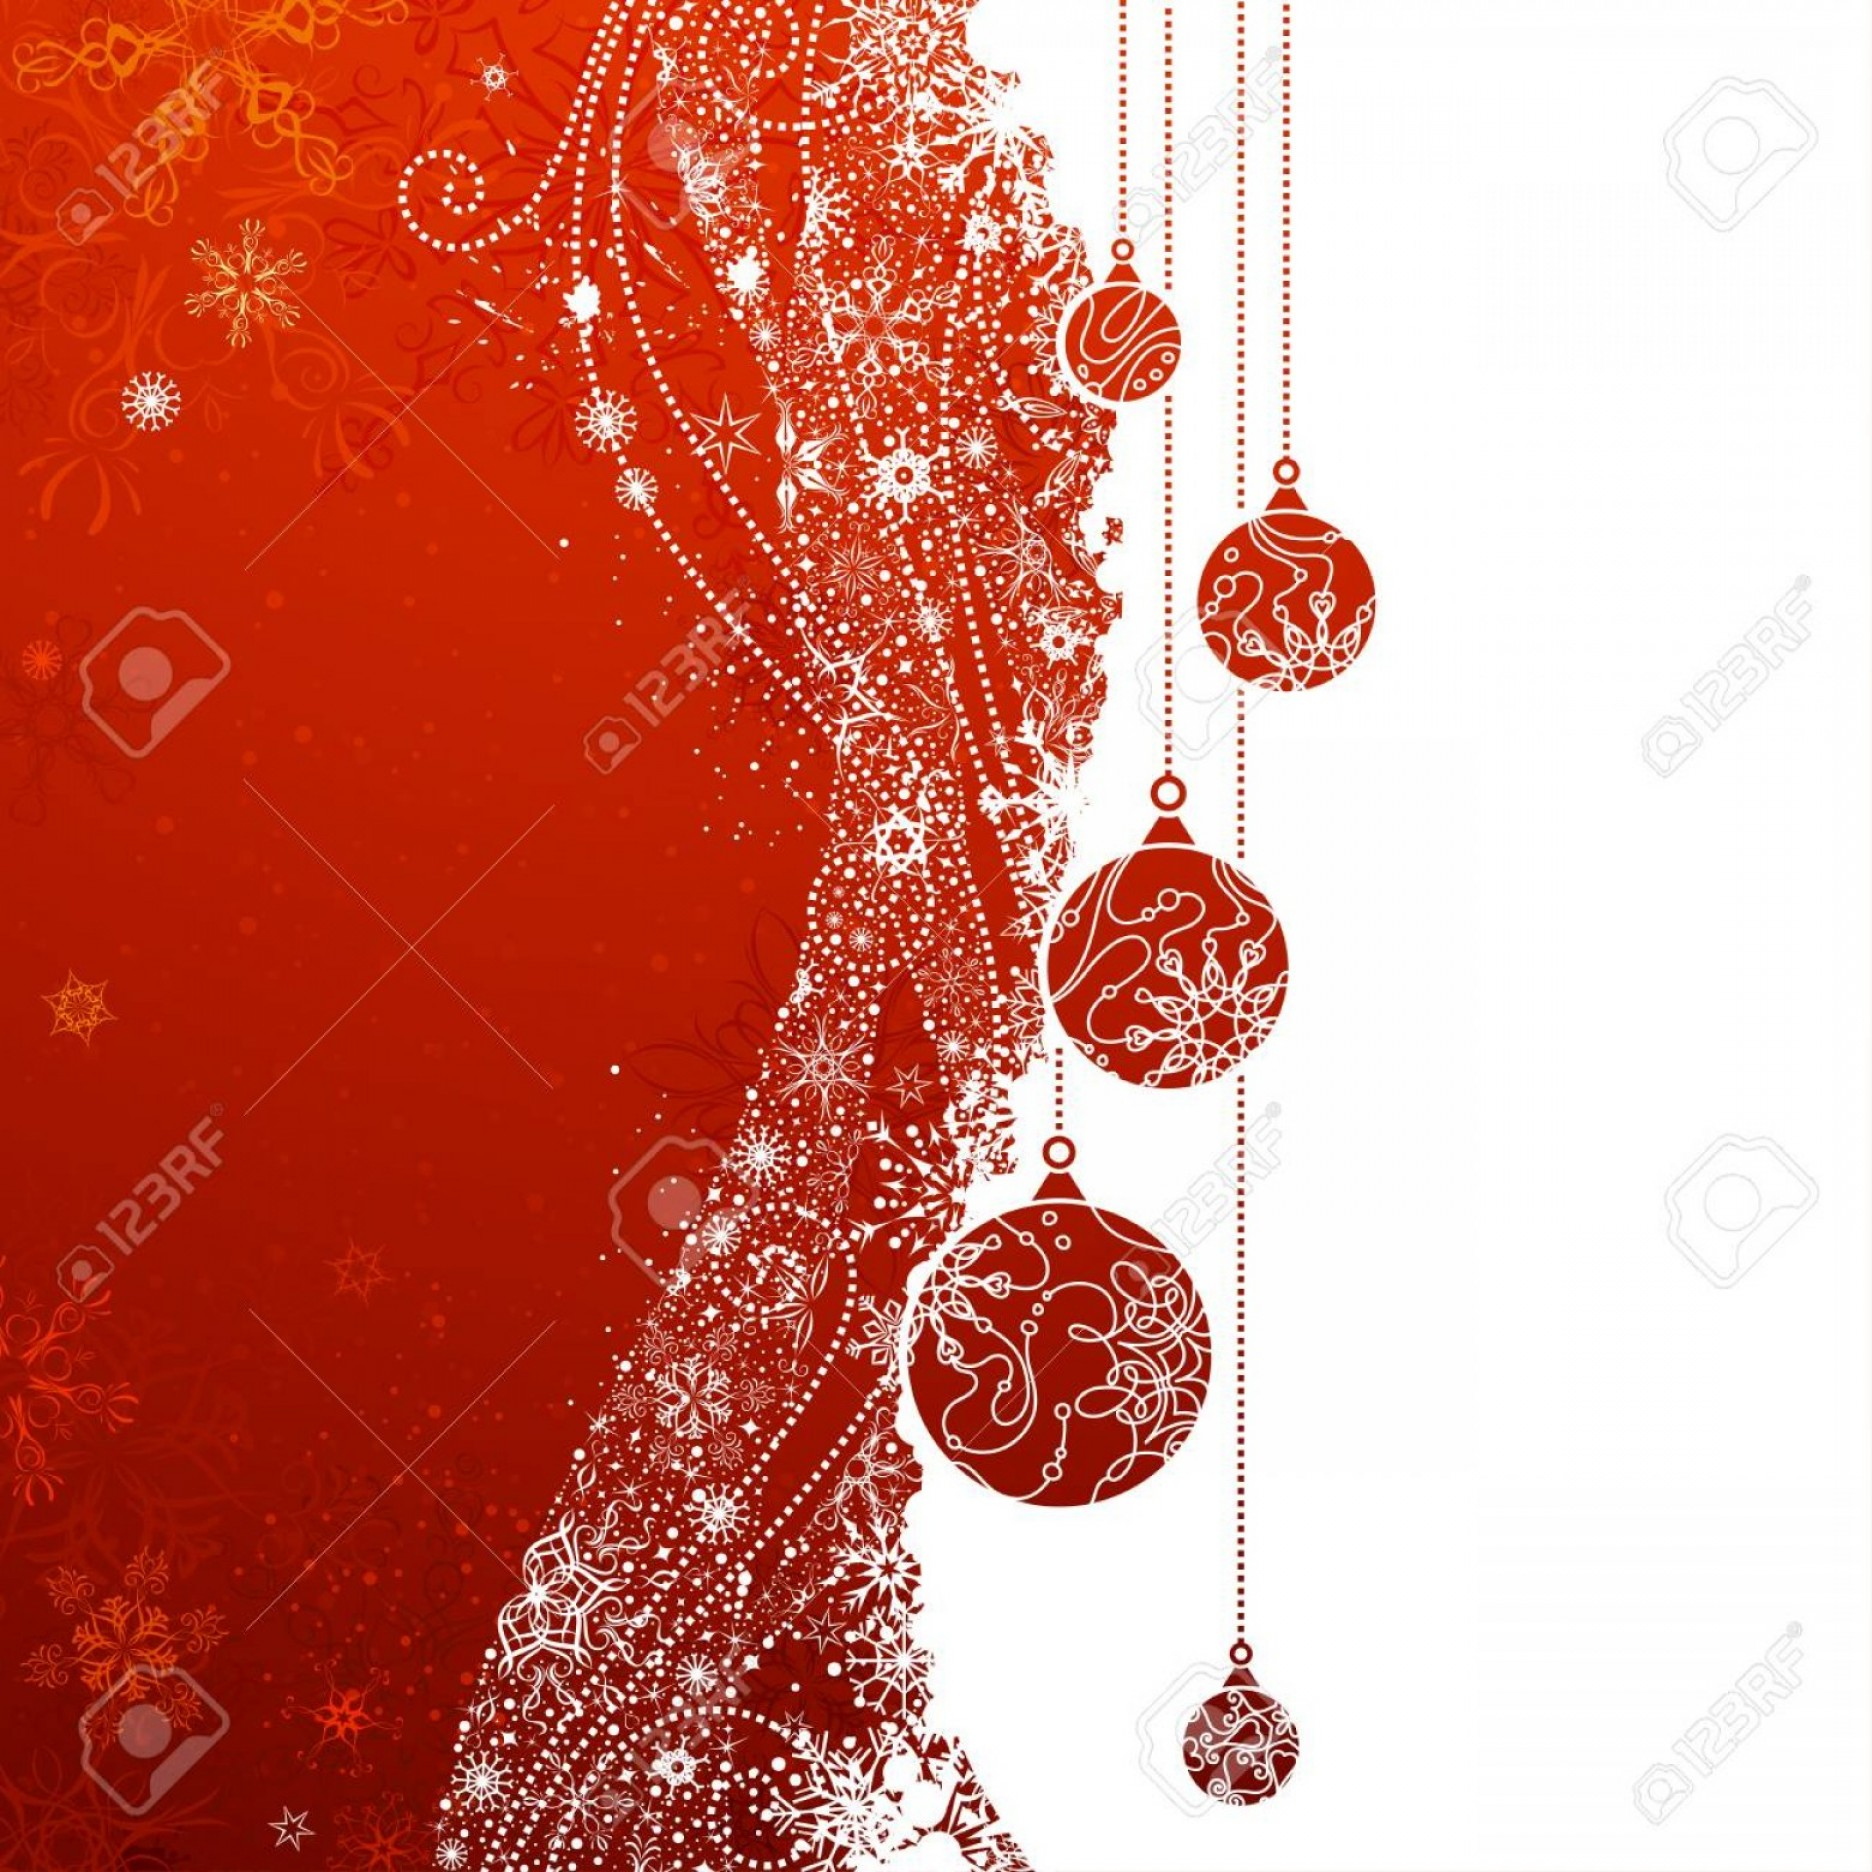 Total Recall Vector Red Jacket: Photostock Vector Red Christmas Background Grunge Vector Background With Snowflakes Christmas Balls And Decorations Th